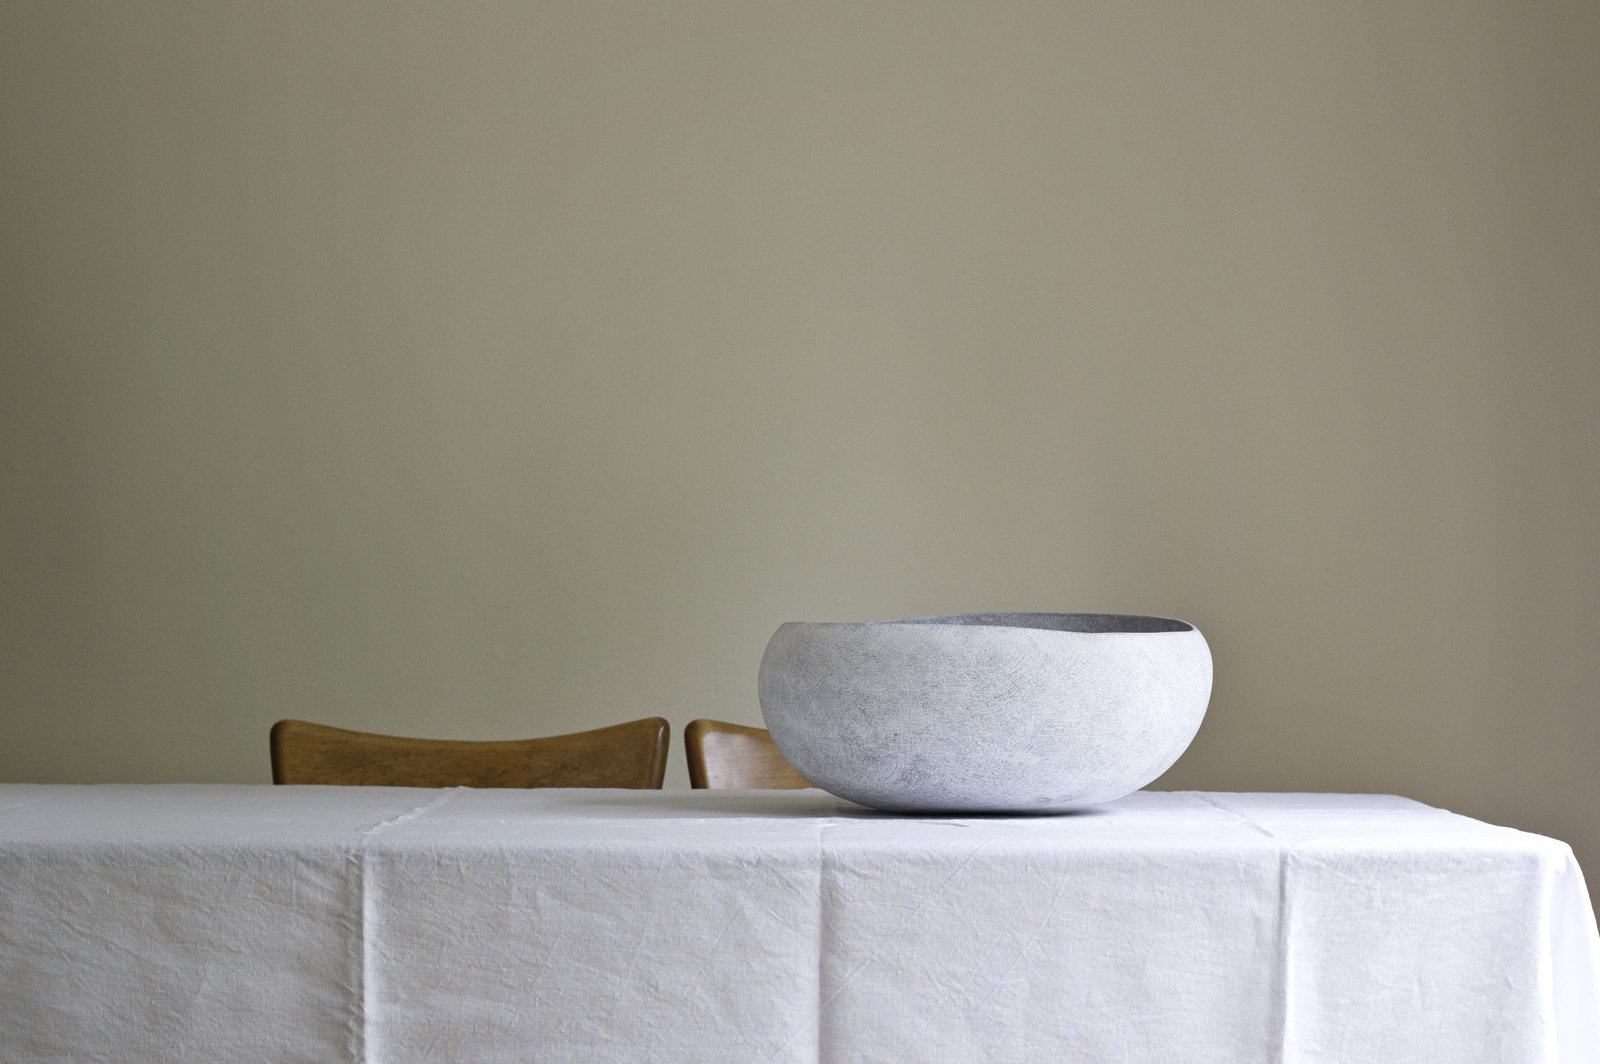 Yasha-Butler-Ceramics-White-Lithic-Vessel-Sculpture-Bowl-Large